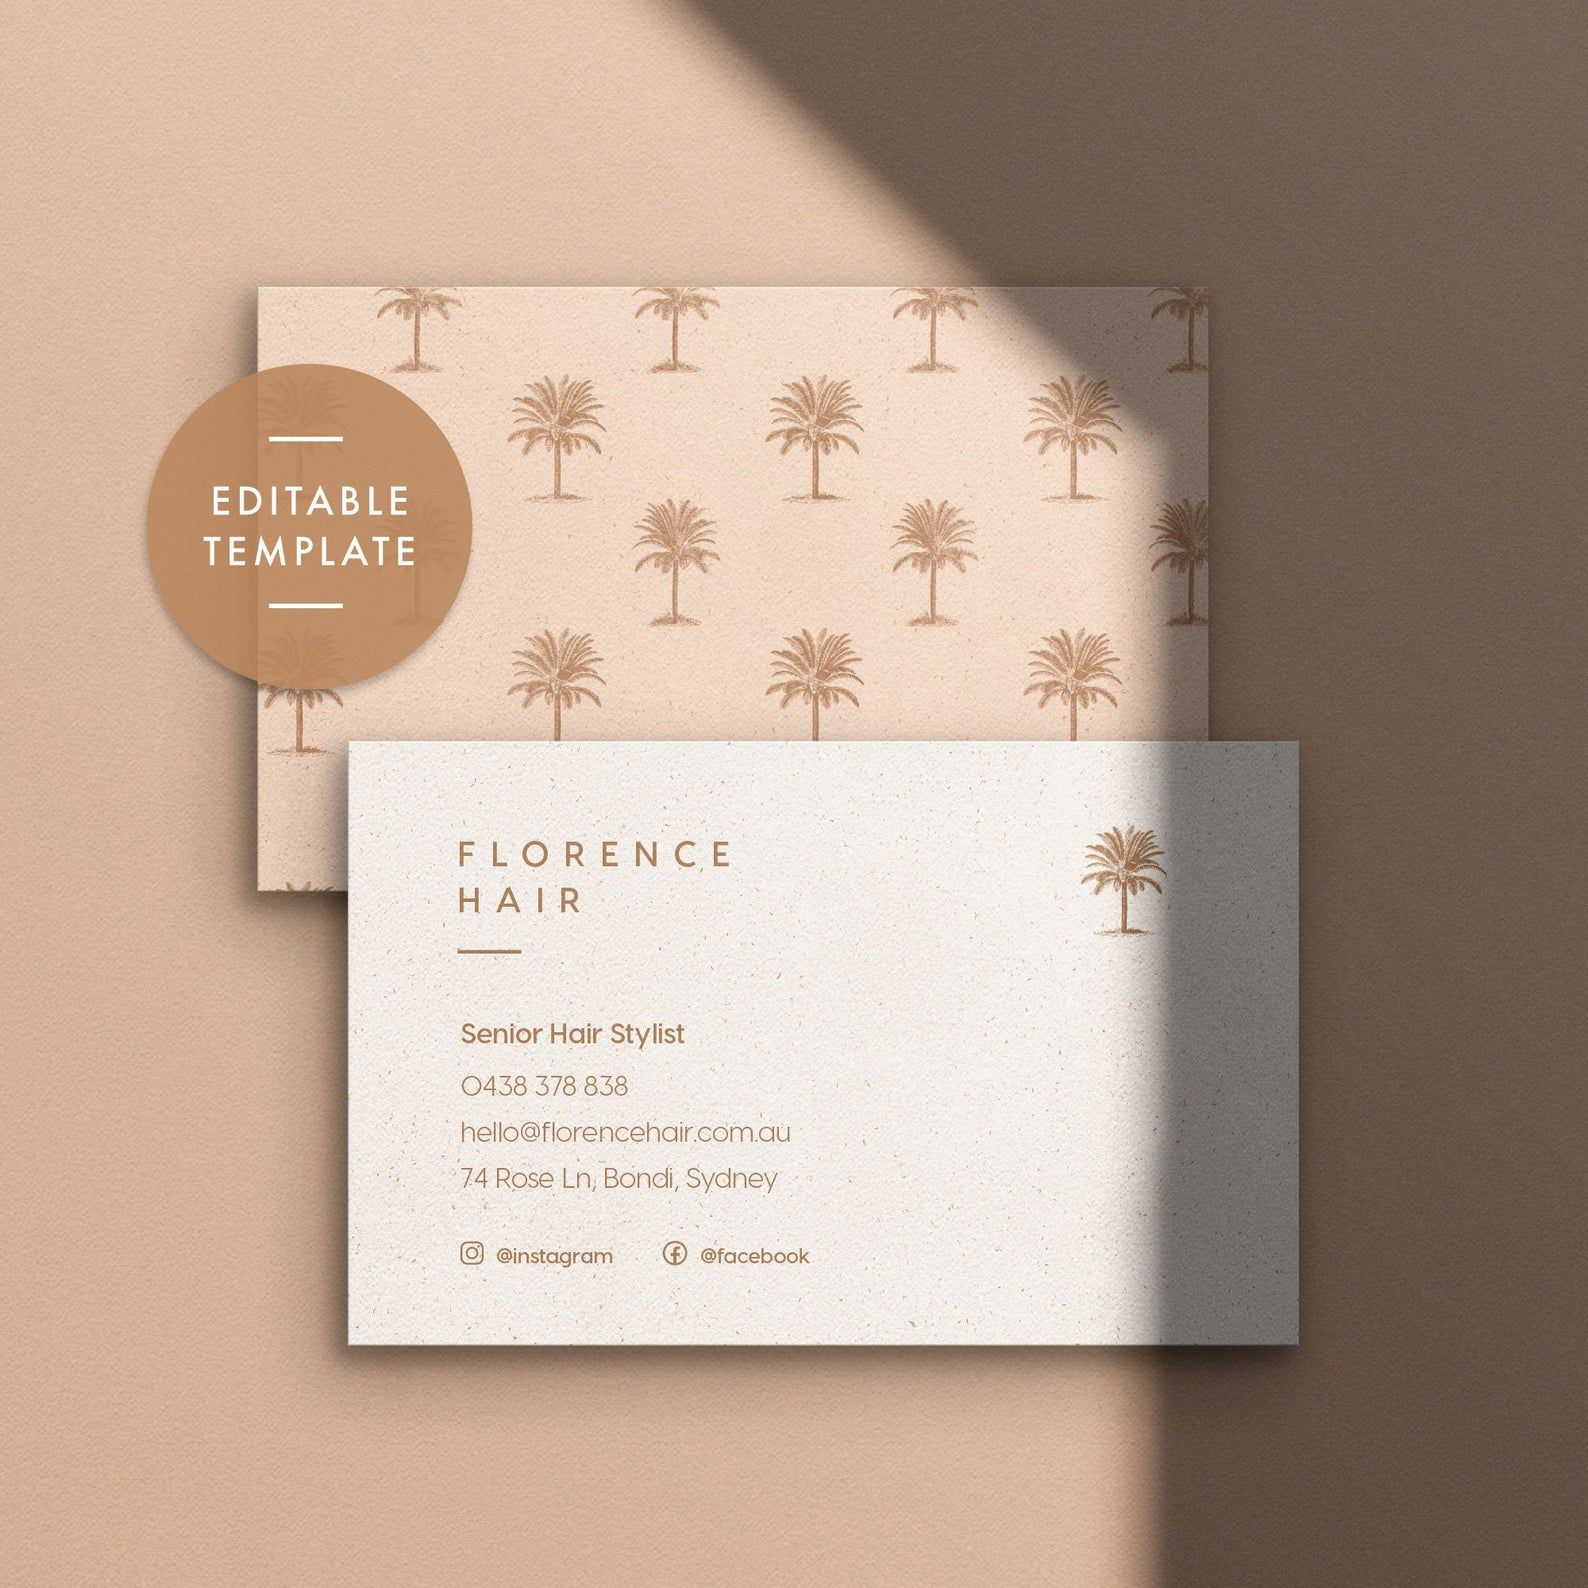 Printable Business Stationery Business Card Template Etsy Stationery Business Card Business Stationery Professional Business Card Design